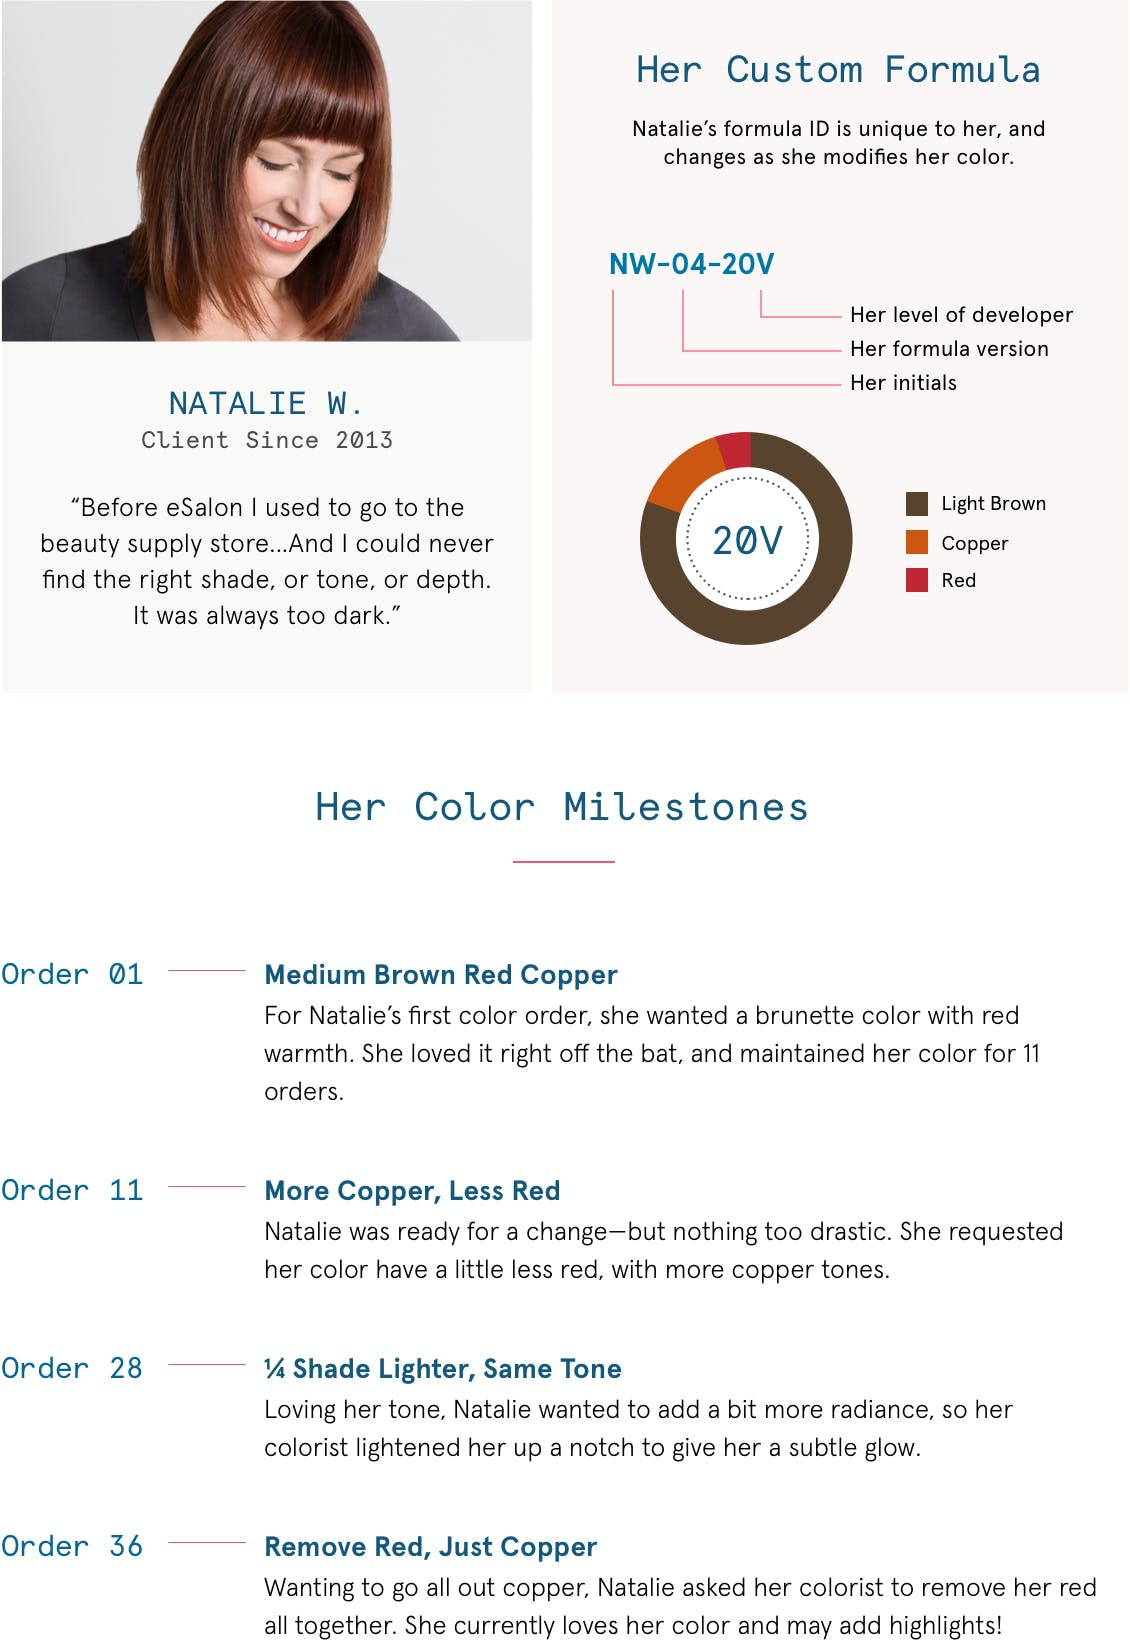 Image of esalon client Natalie's color wheel with information about her custom home hair color